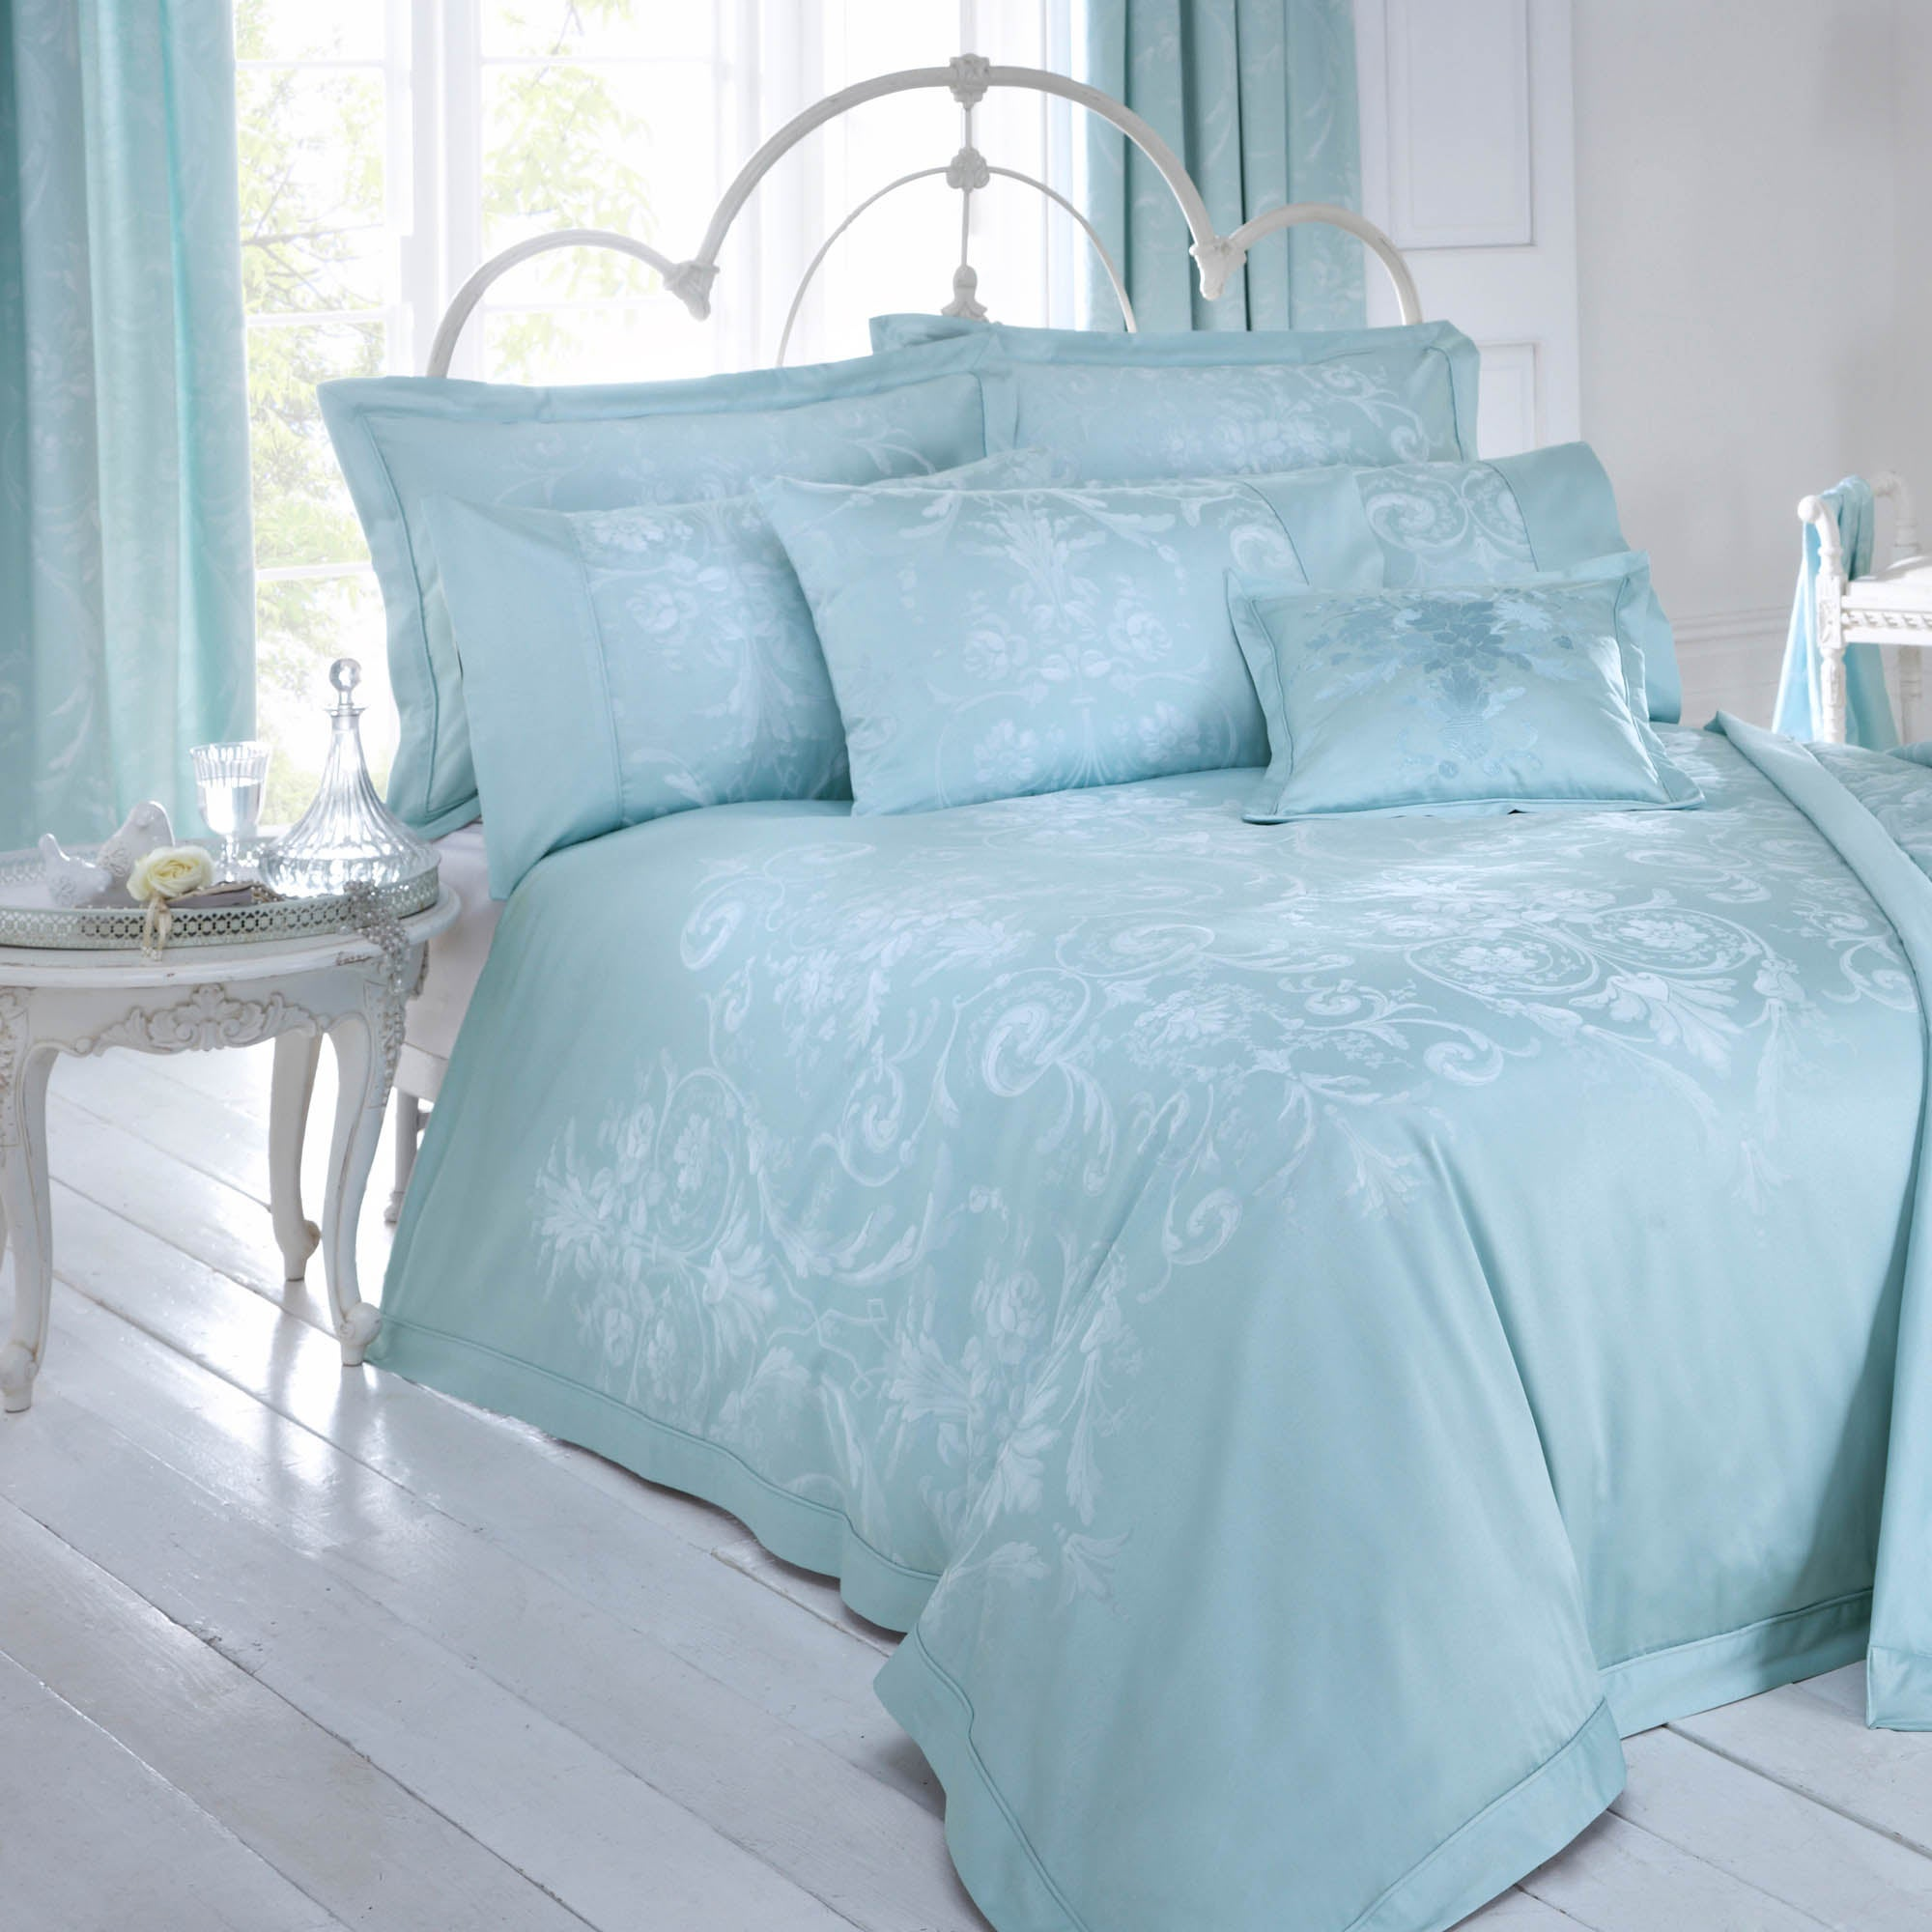 Dorma Duck Egg Regency Collection Duvet Cover